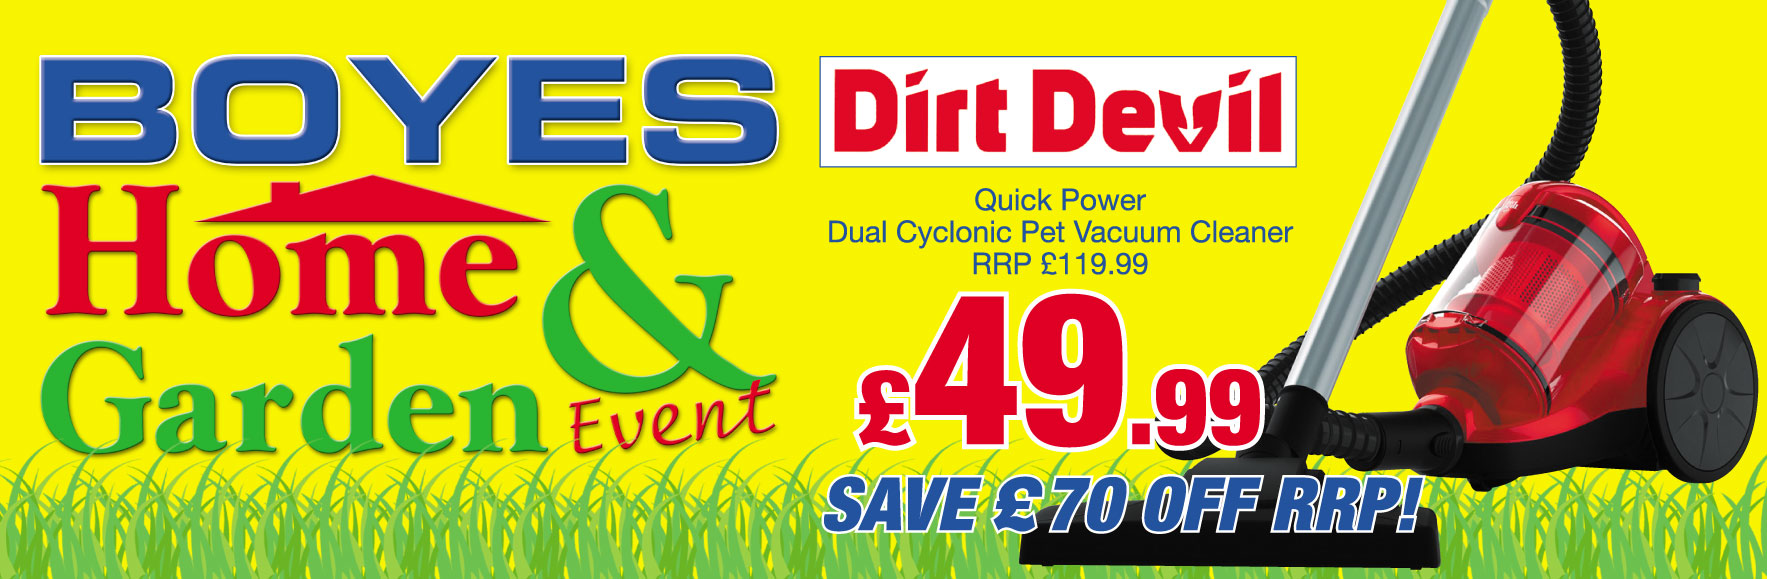 Dirt Devil Dual Cyclonic Pet Vacuum Cleaner RRP £119.99 ONLY £49.99!